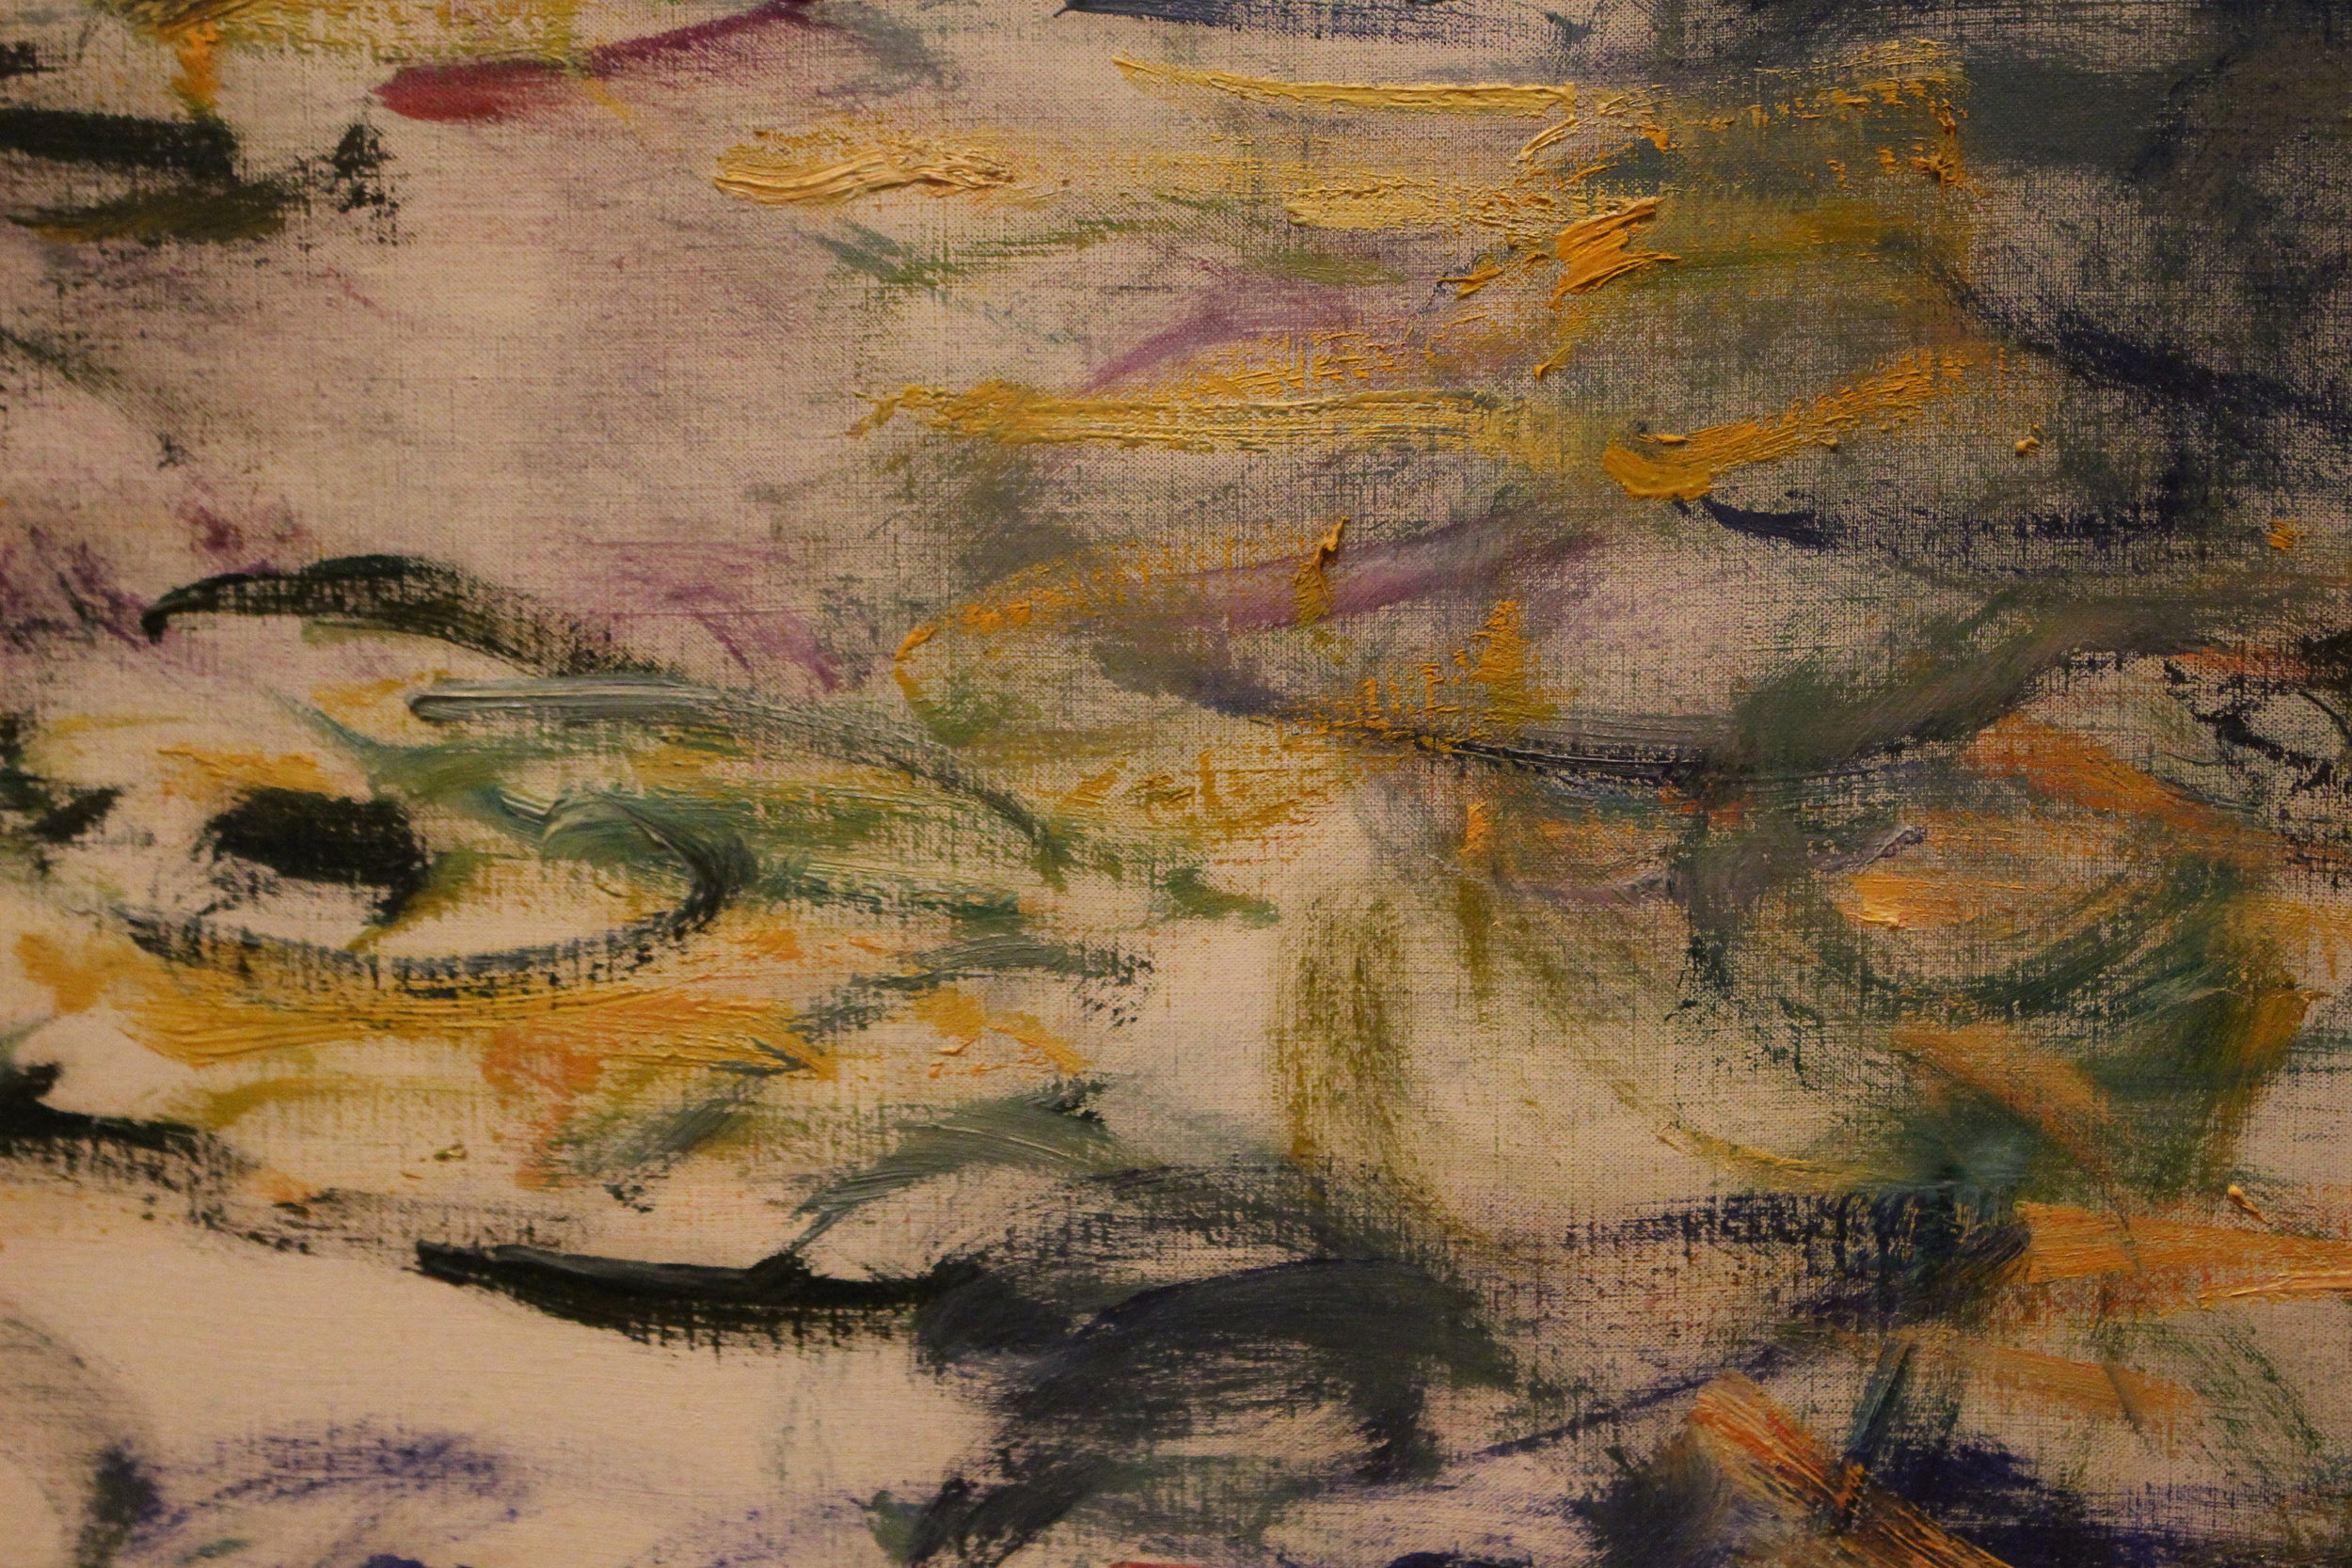 A close-up of the brushstrokes in one of his more abstract paintings